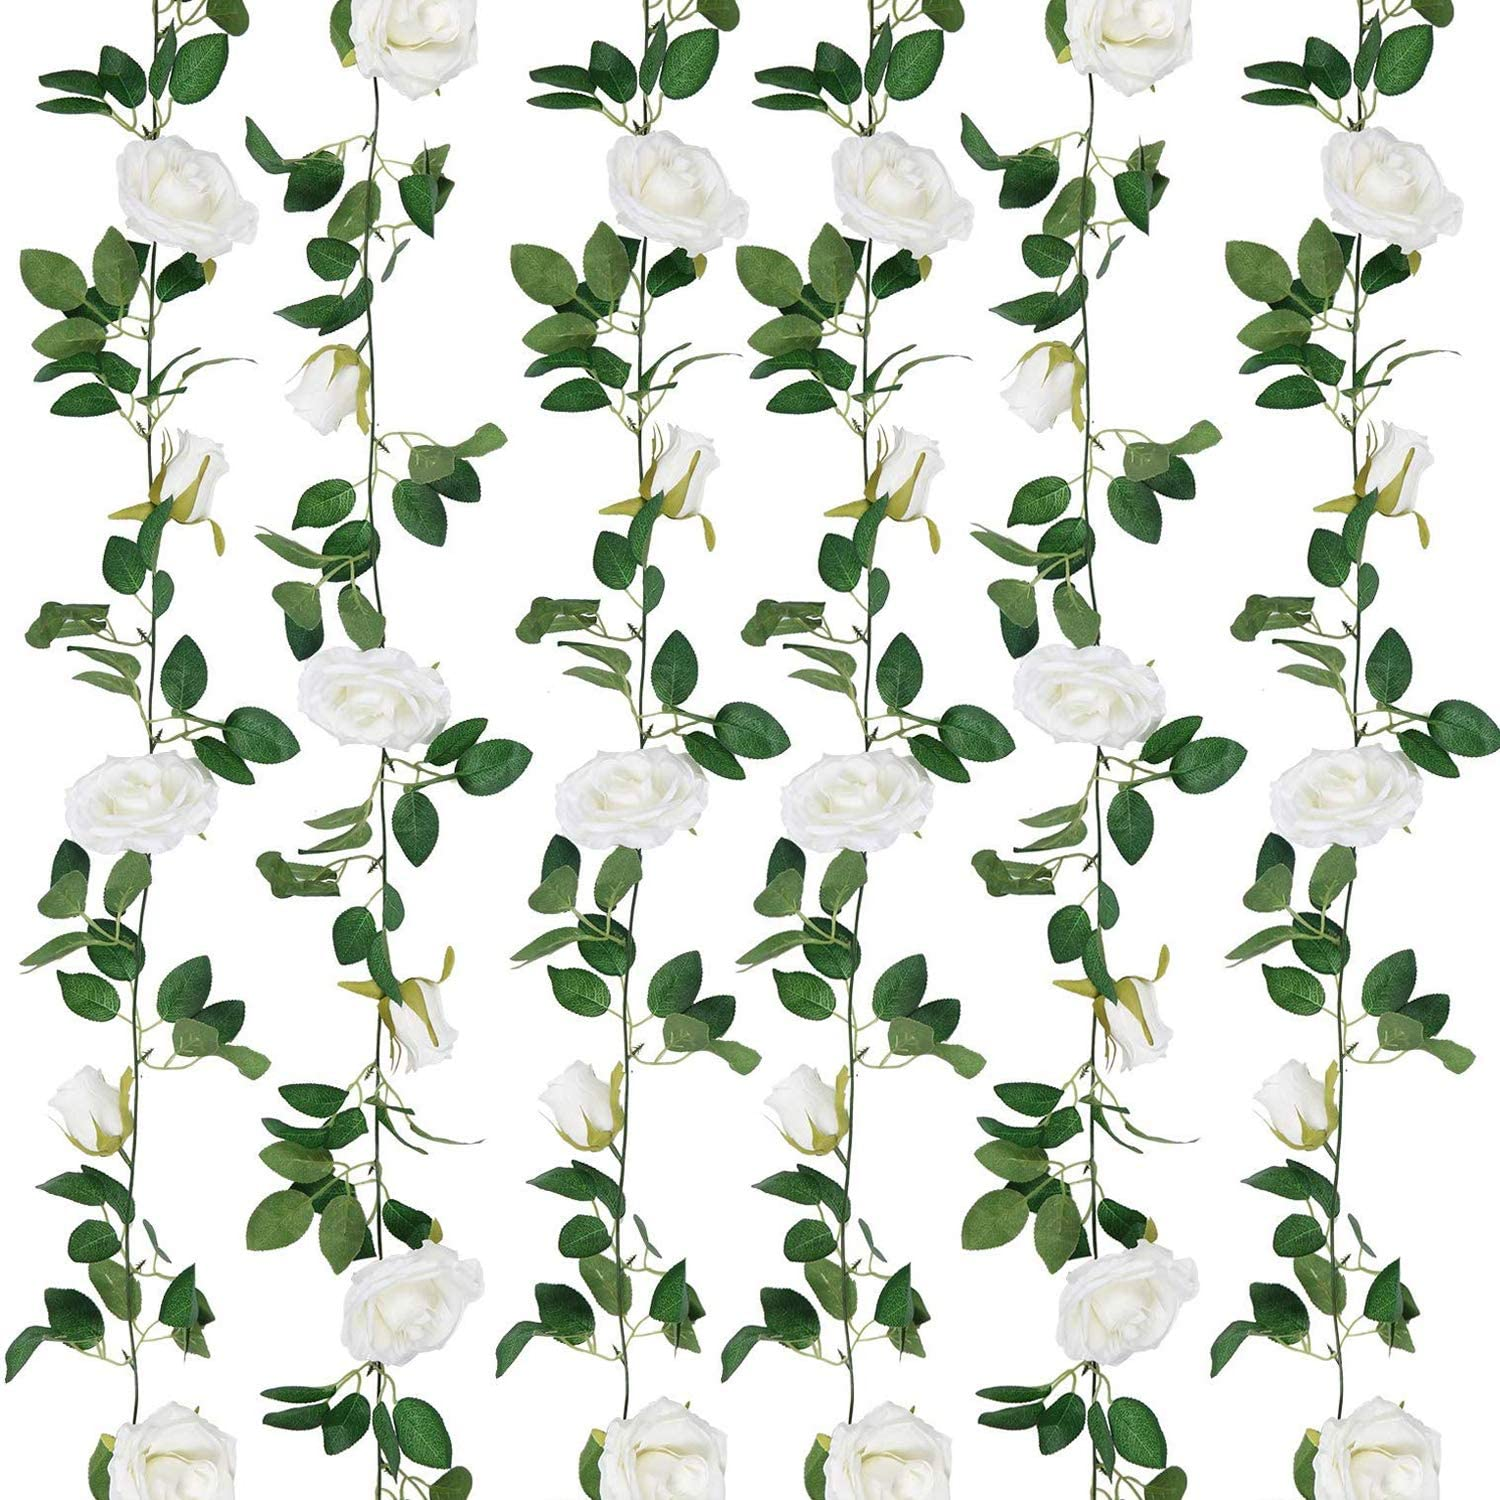 SHACOS Artificial White Rose Garlands 2 Pack Rose Vines Leaves Hanging Rose Flower Garland Home Garden Wedding Party Decor (White, 2)